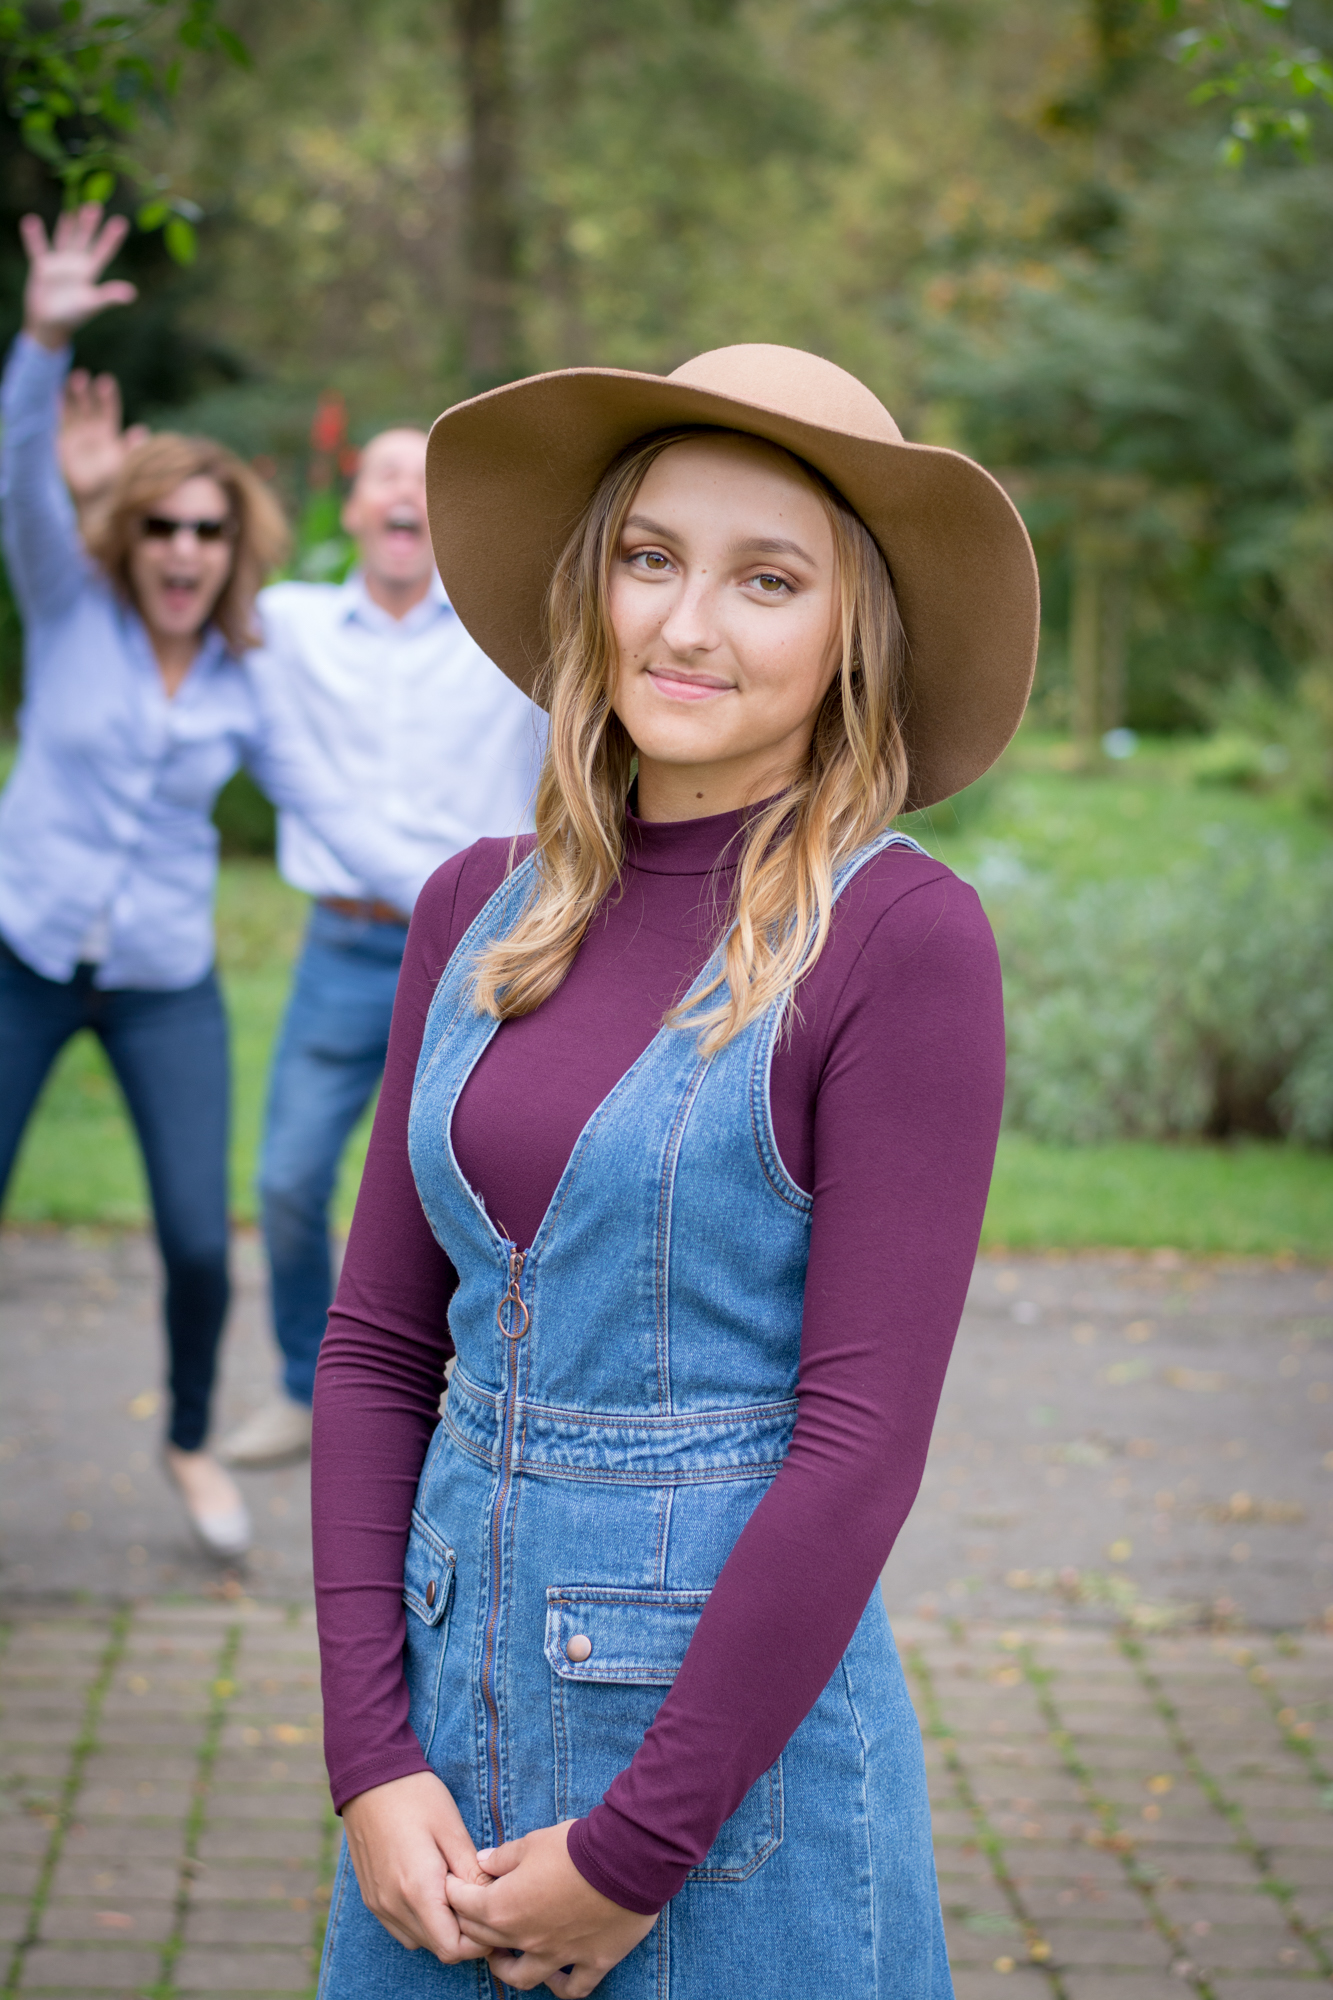 life by pictures photography_senior portraits_Olivia_columbus_20171008_10.jpg